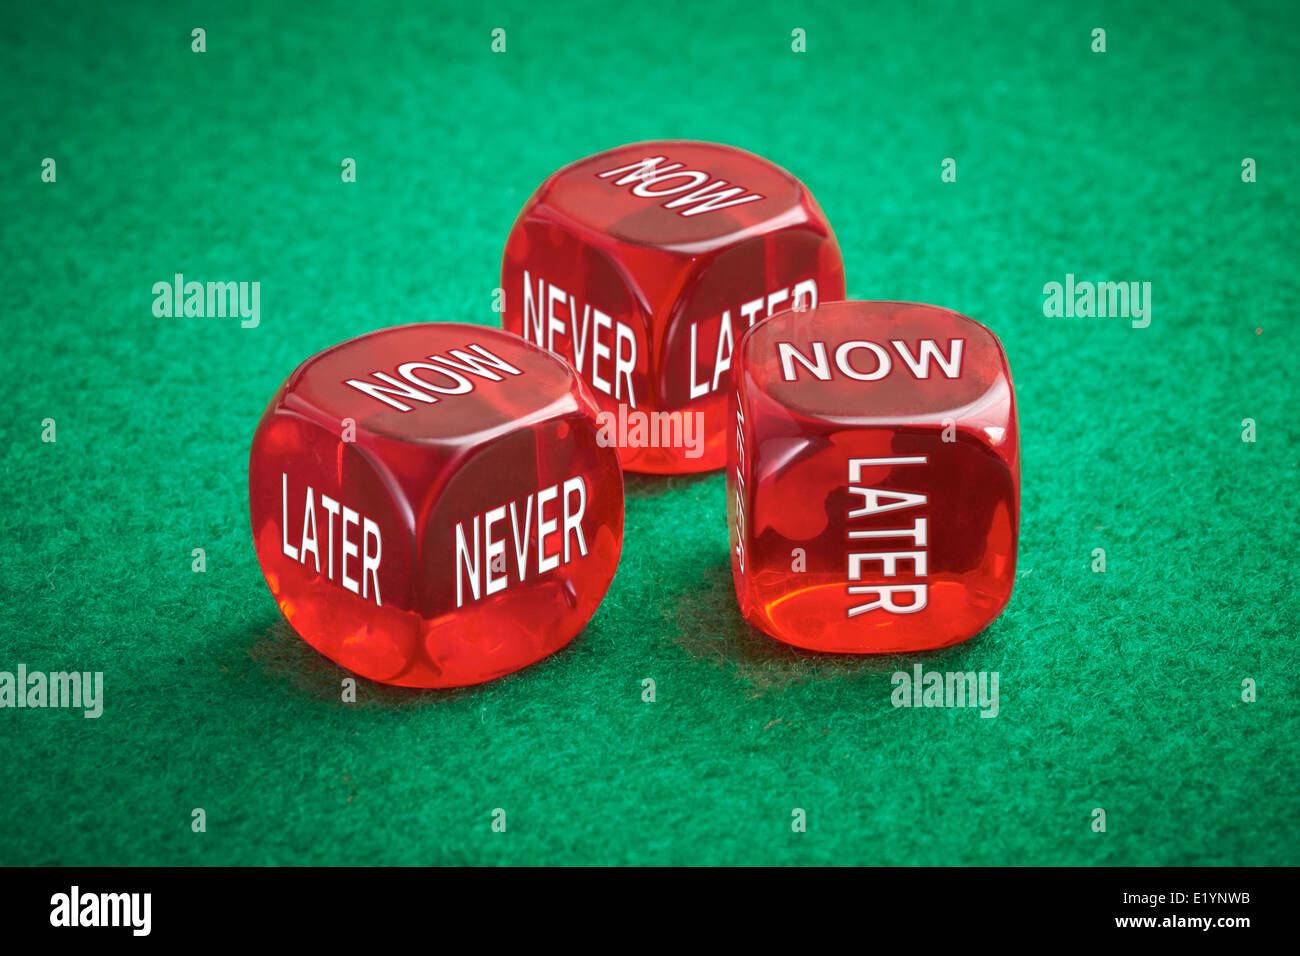 Wasting time concept, three red dice on a green felt background. - Stock Image